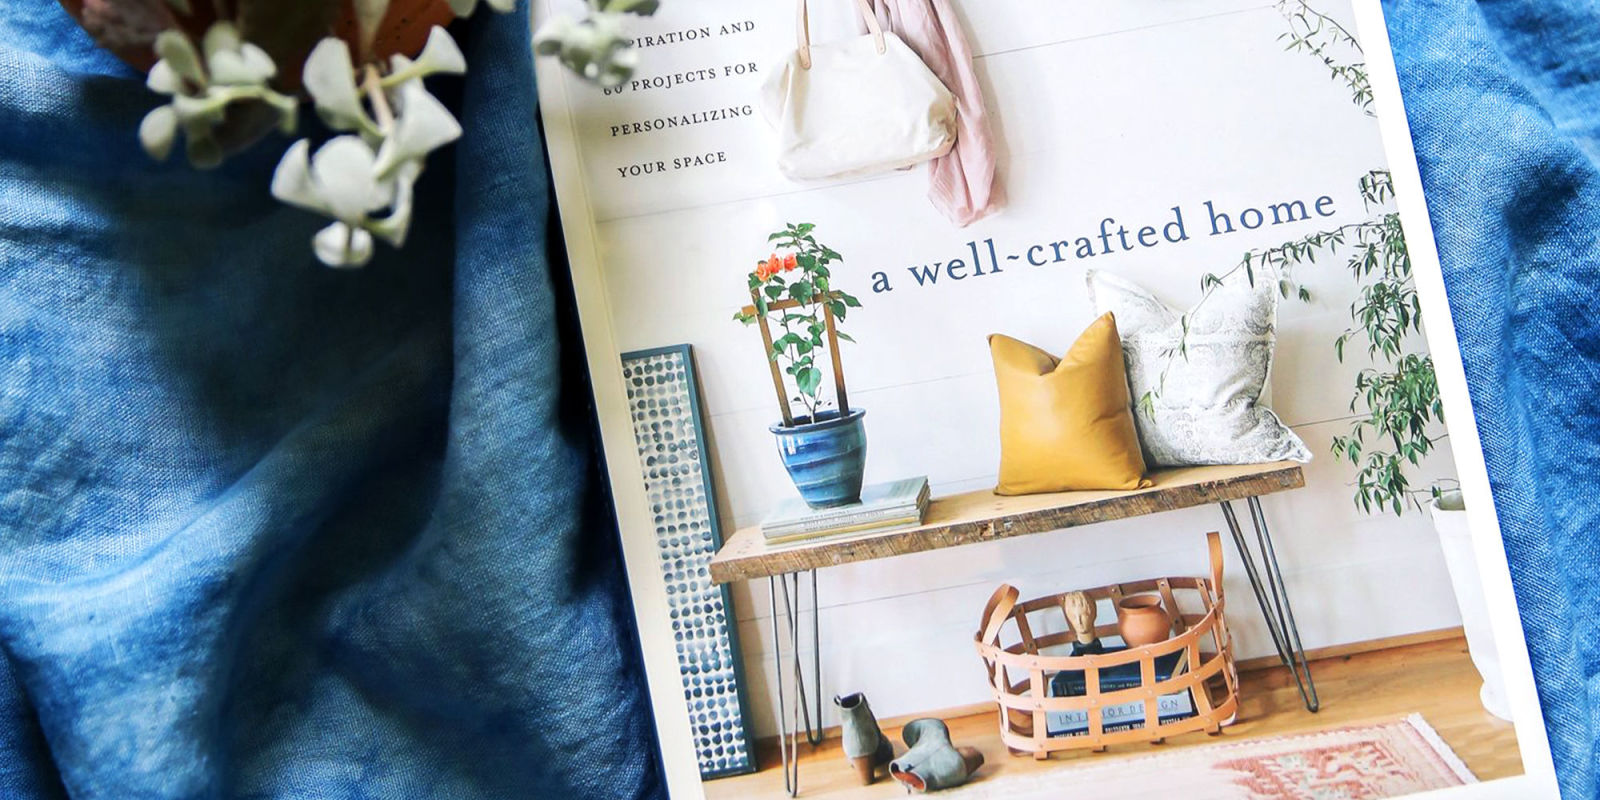 18 Best Interior Design Books of 2018 - Top Books for Home Decor Ideas